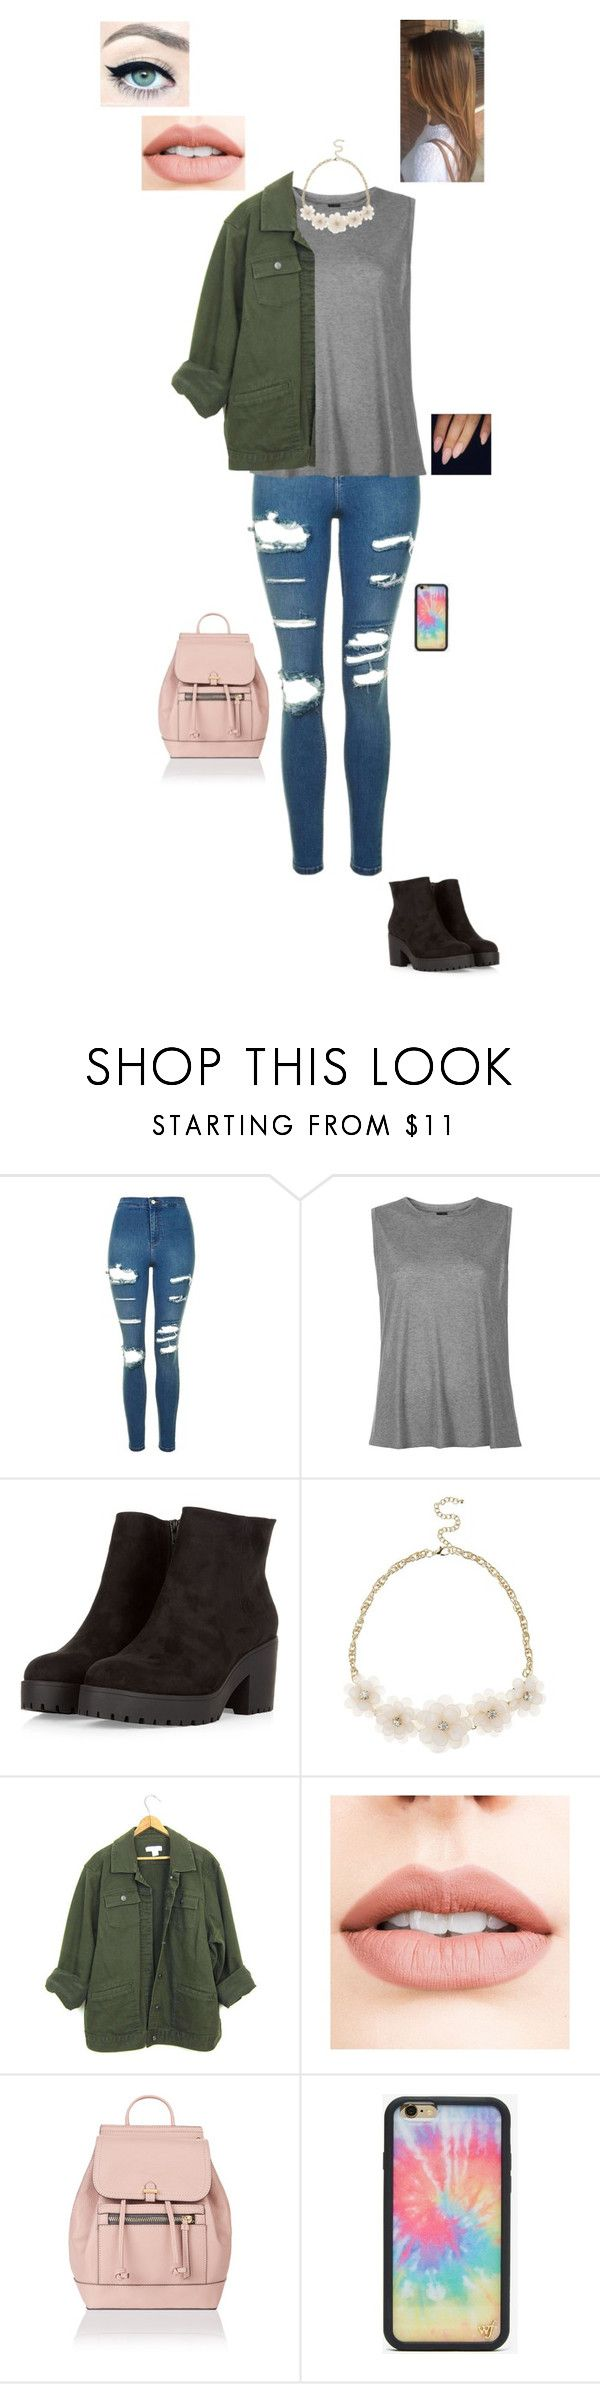 """22.10.17"" by jesshorne2016 ❤ liked on Polyvore featuring Topshop, Boutique, Jouer, Accessorize and Wildflower"